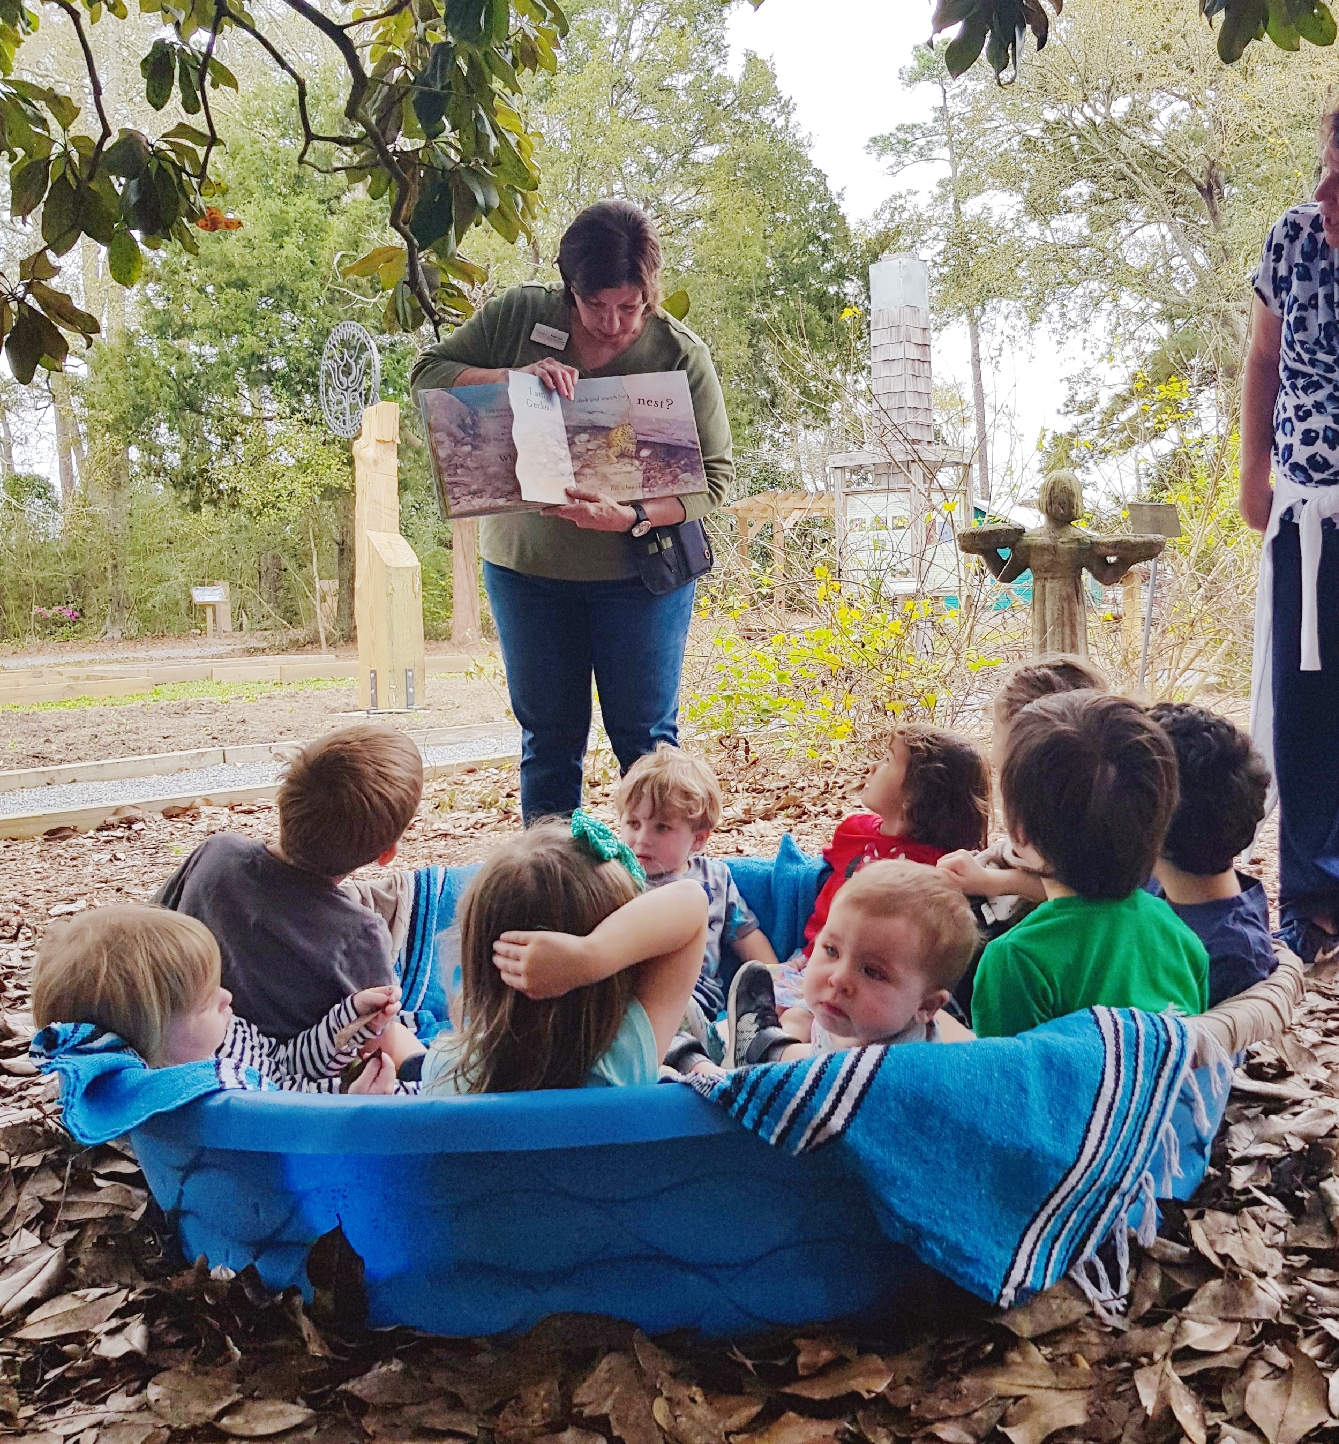 After learning about nests, these toddlers experienced the feeling of nesting together.